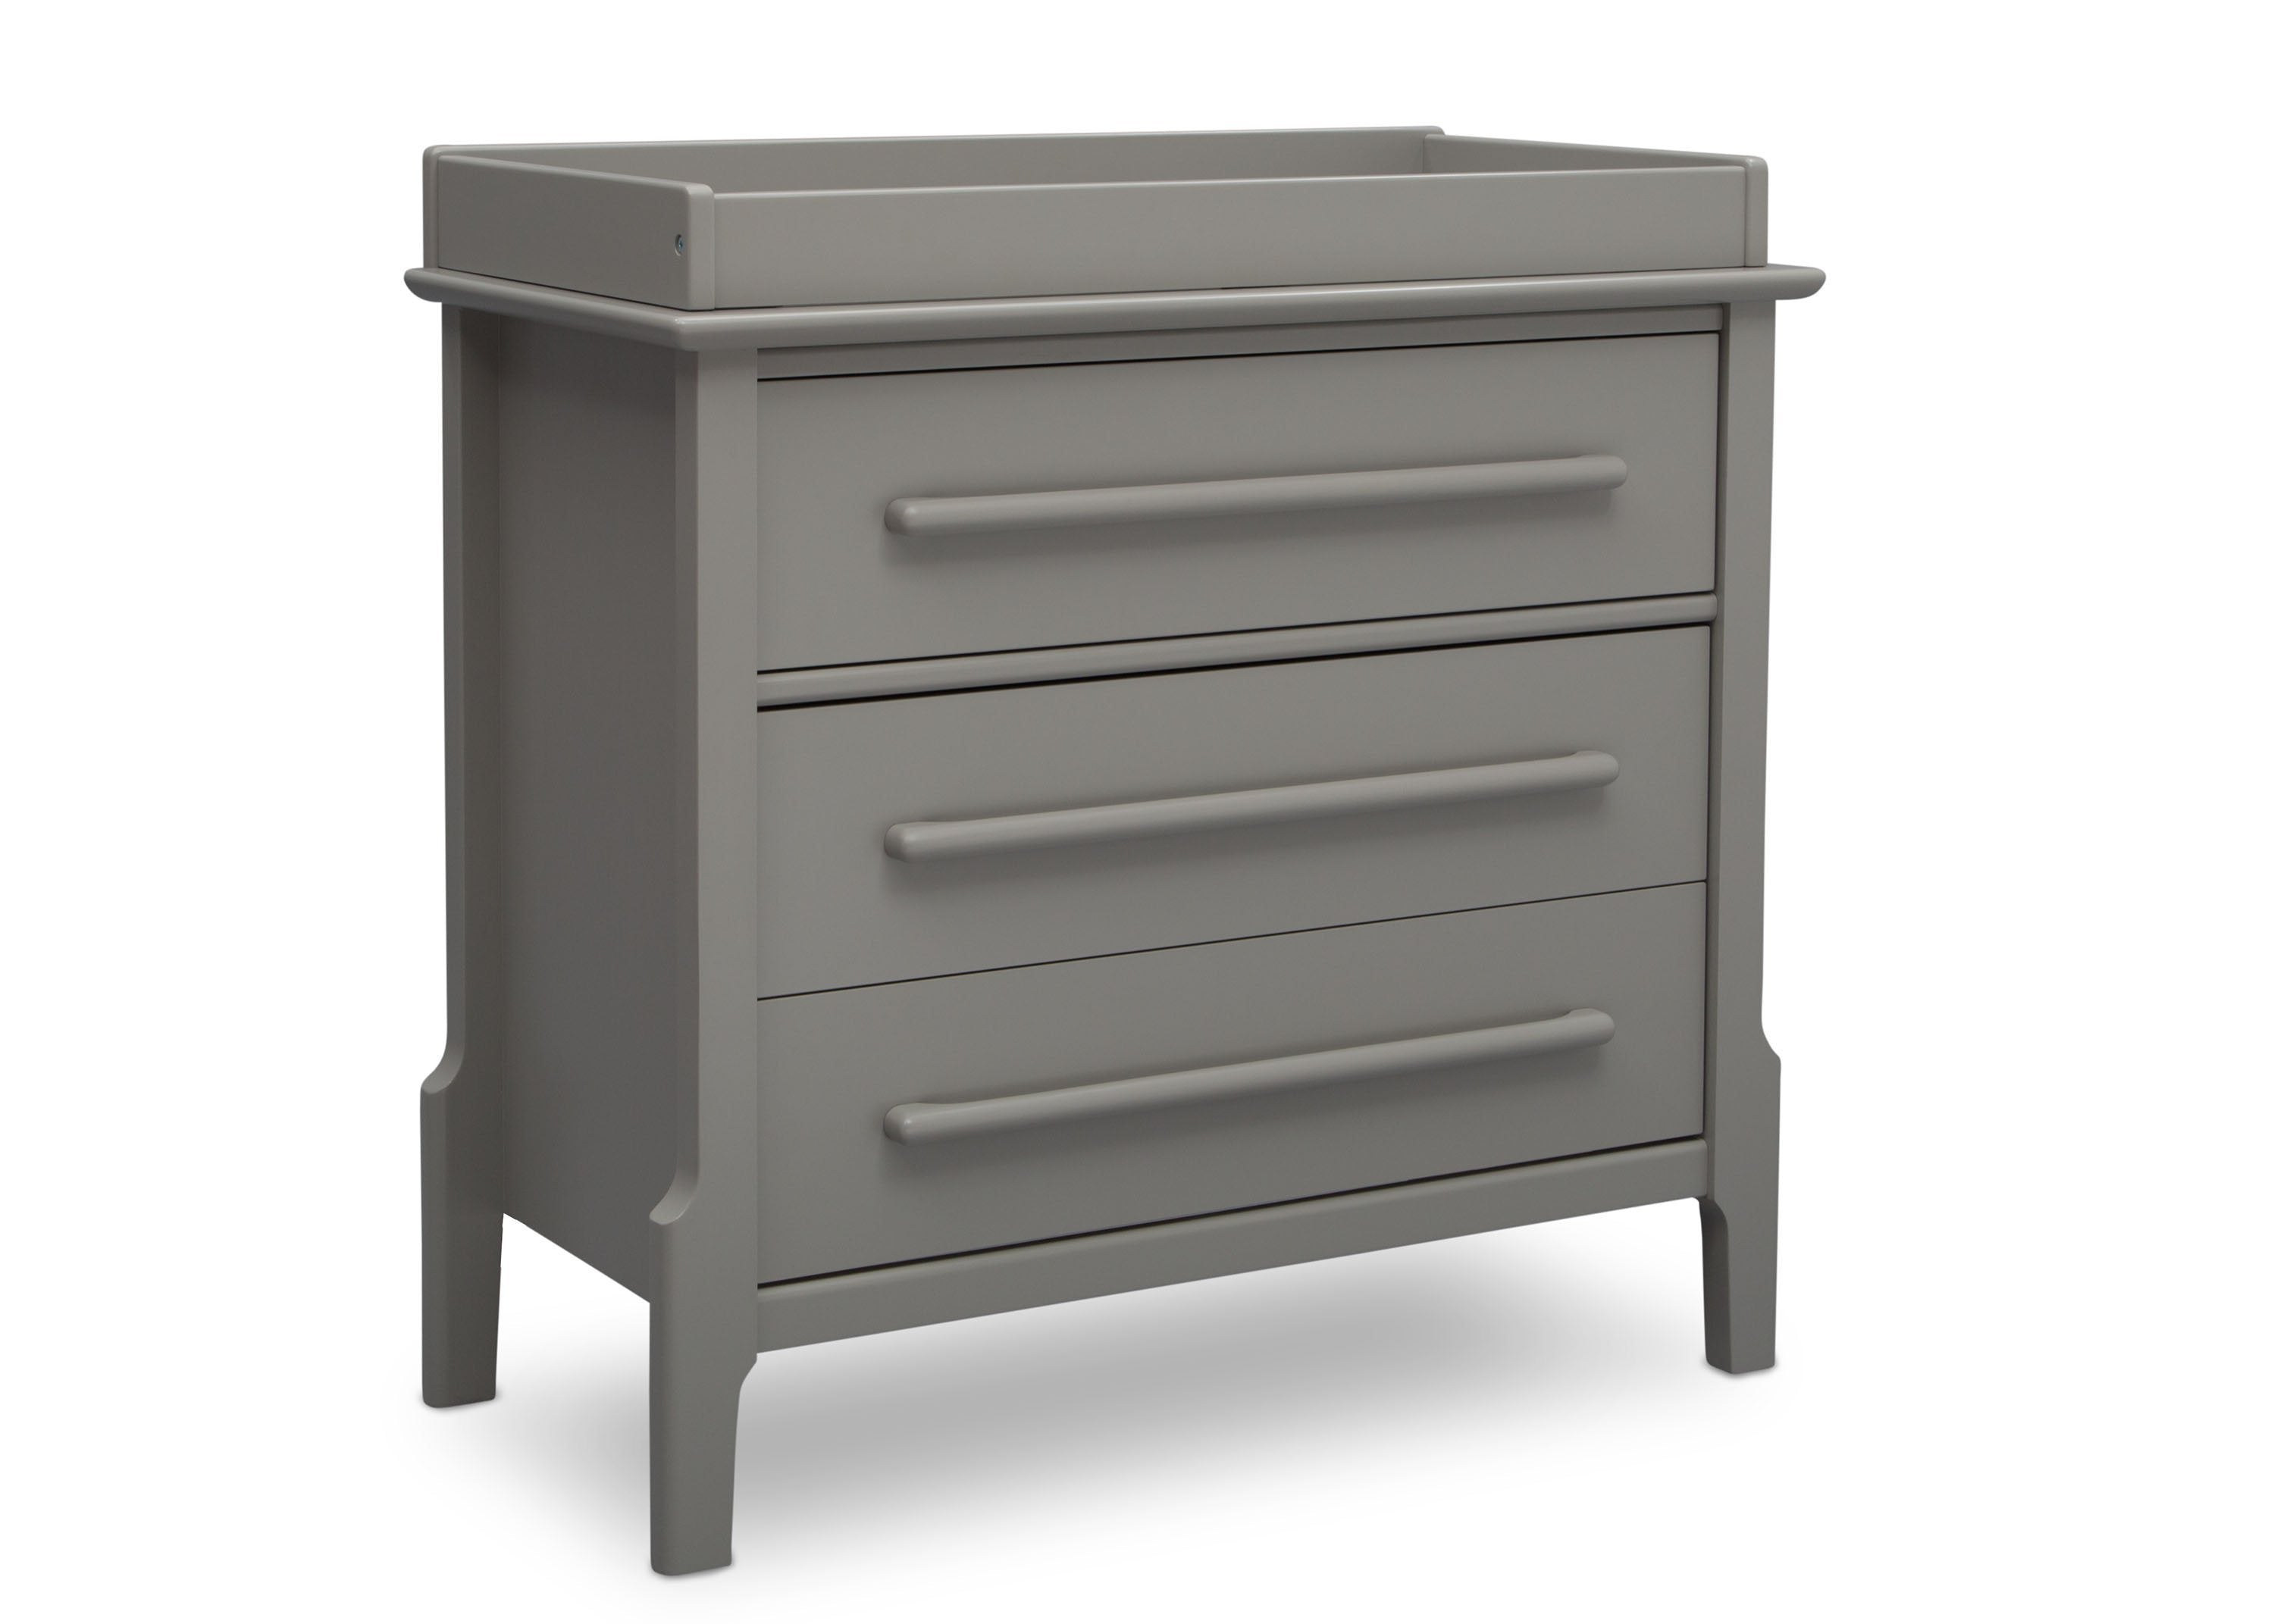 top dresser topper grey angle century modern classic black mid with products drawer serta changing